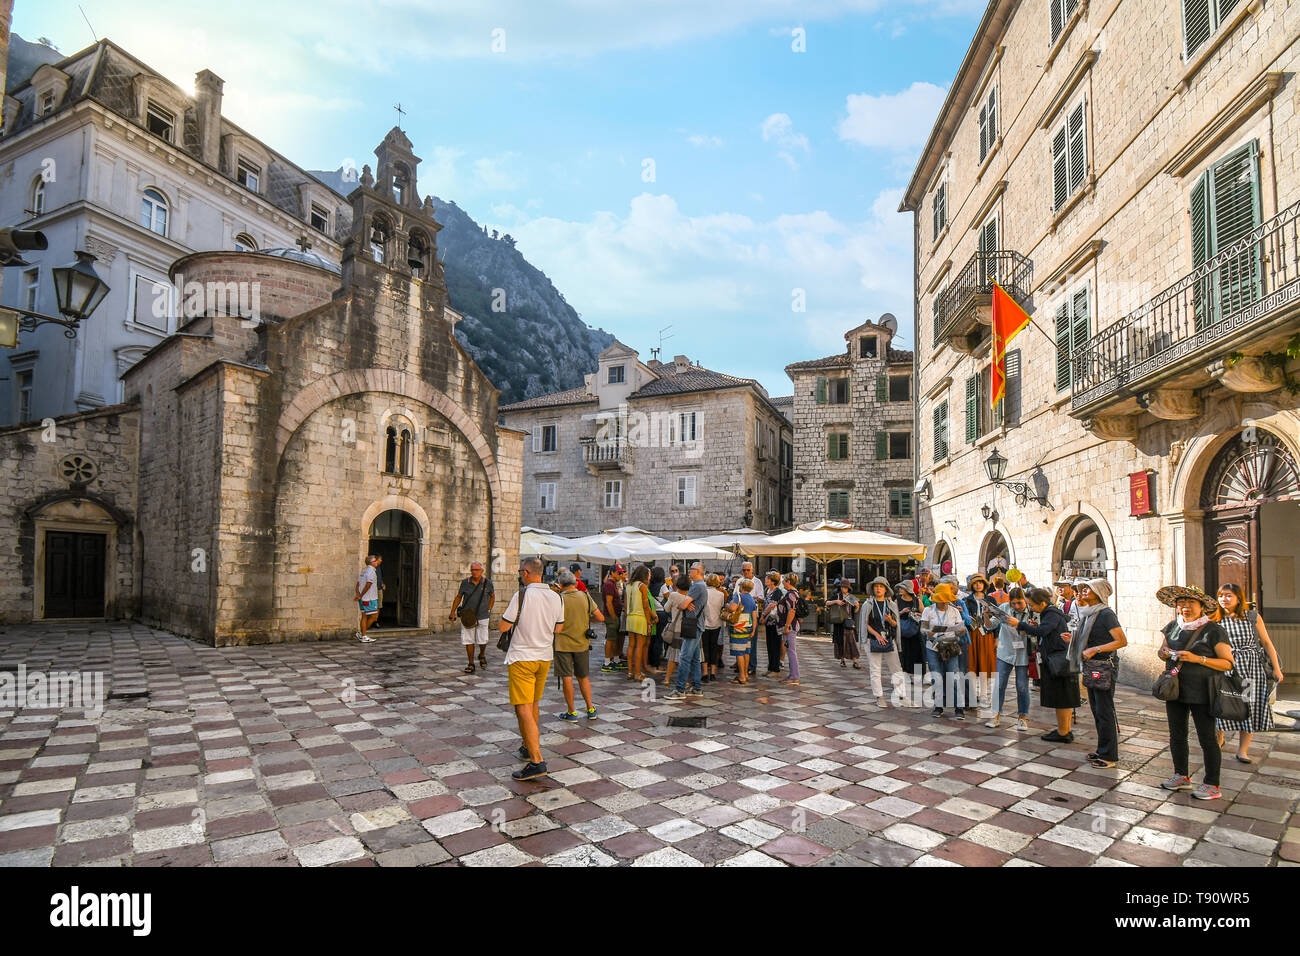 Tourists gather on St Luke's square in front of the old church with it's three bell towers in Kotor, Montenegro. Stock Photo